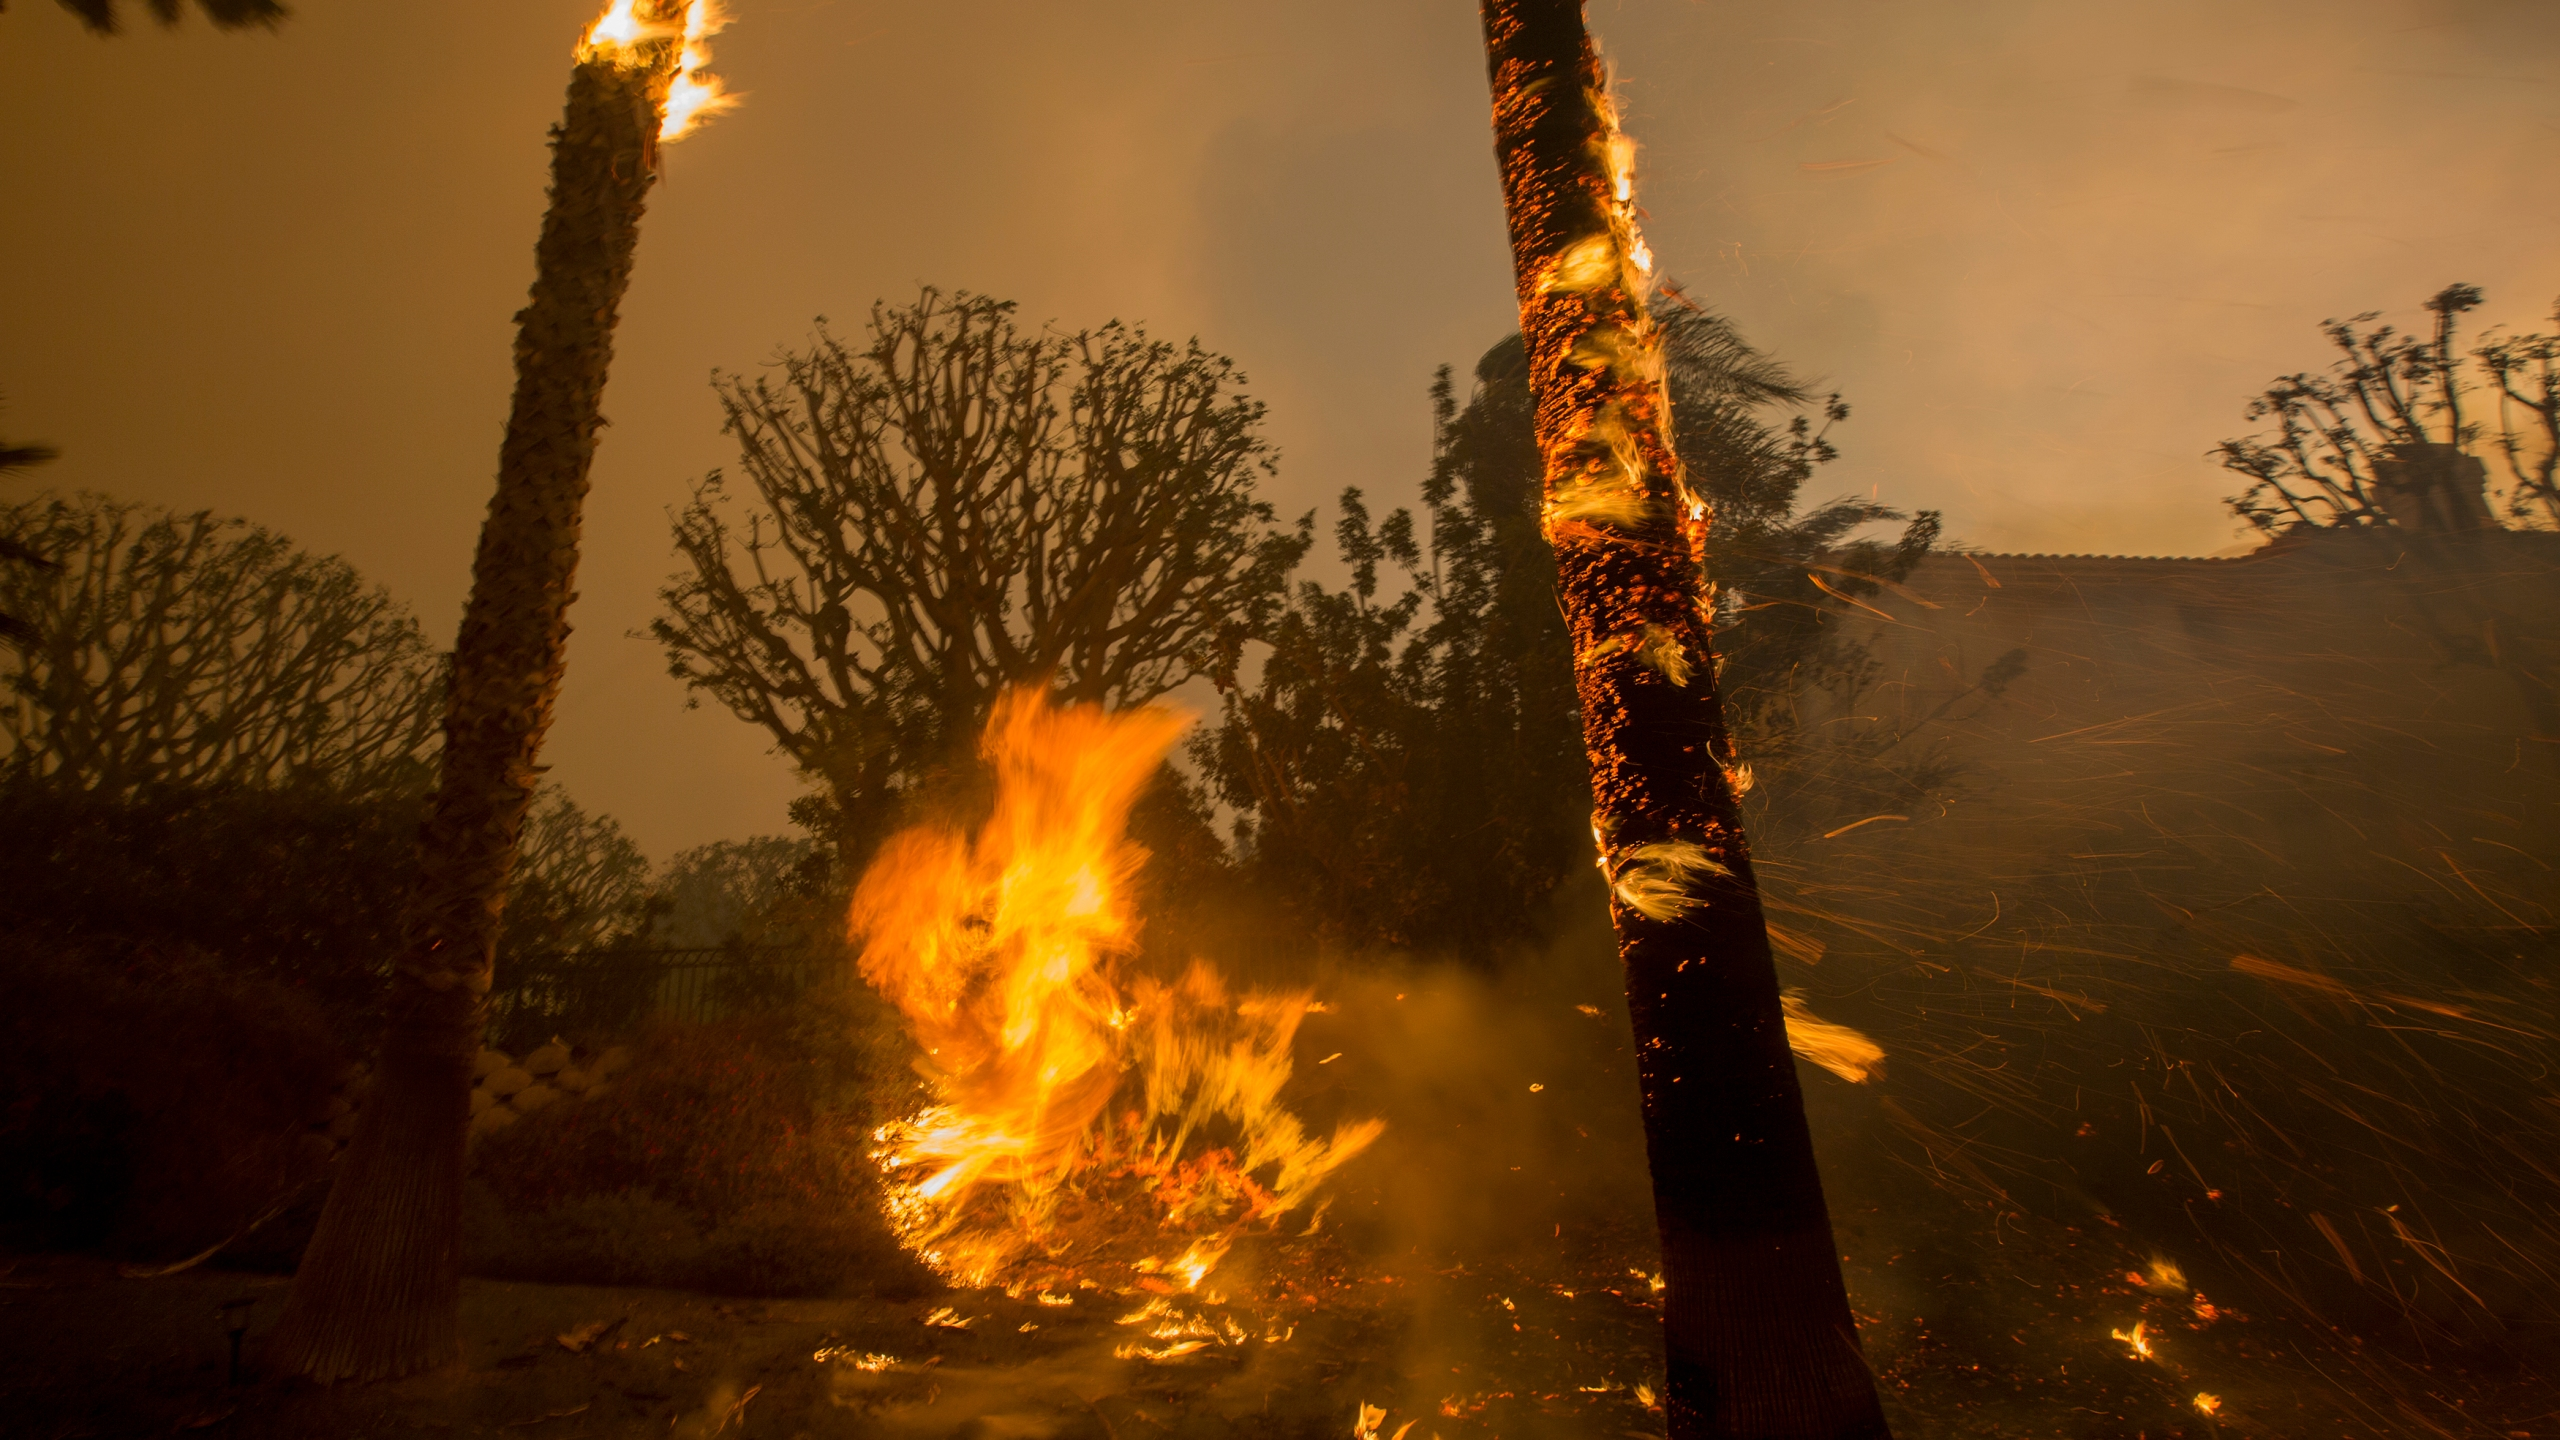 Embers are blown by strong winds roaring sound during the Woolsey Fire on Nov. 9, 2018, in Malibu. (Credit: David McNew/Getty Images)